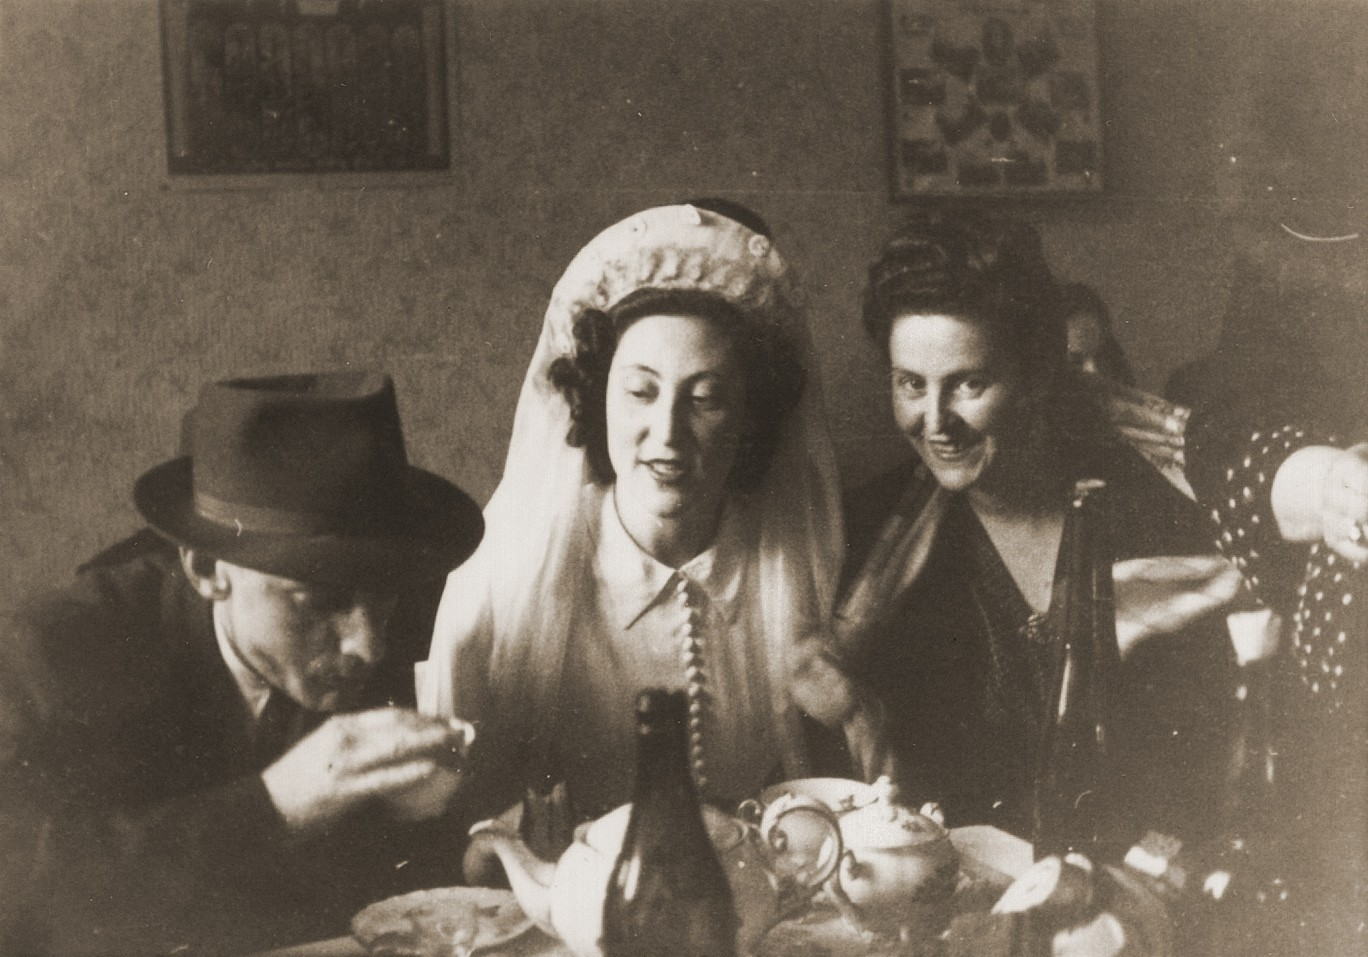 The wedding of Ibby Neuman and Max Mandel at the Bad Reichenhall displaced persons' camp.  They were cousins of the wife of Ben Ferencz. Gertrude Fried from Satu-Mare.